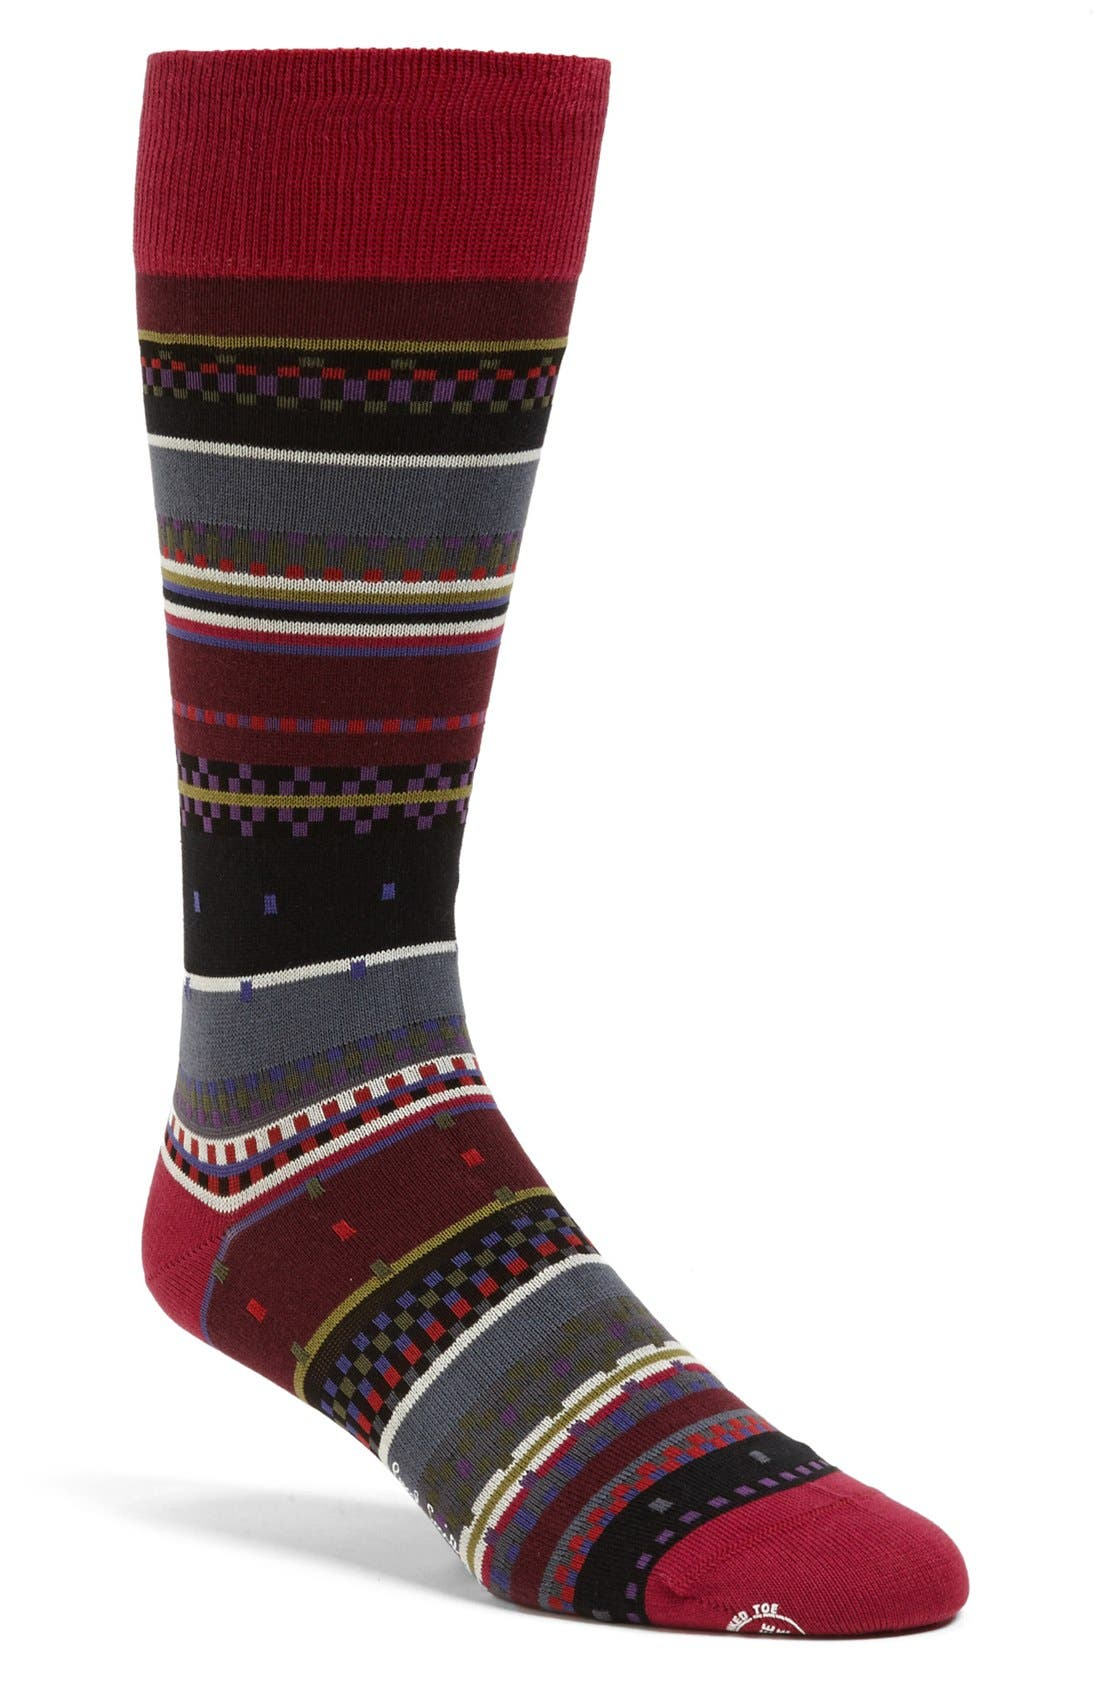 Alternate Image 1 Selected - Paul Smith Stripe Socks